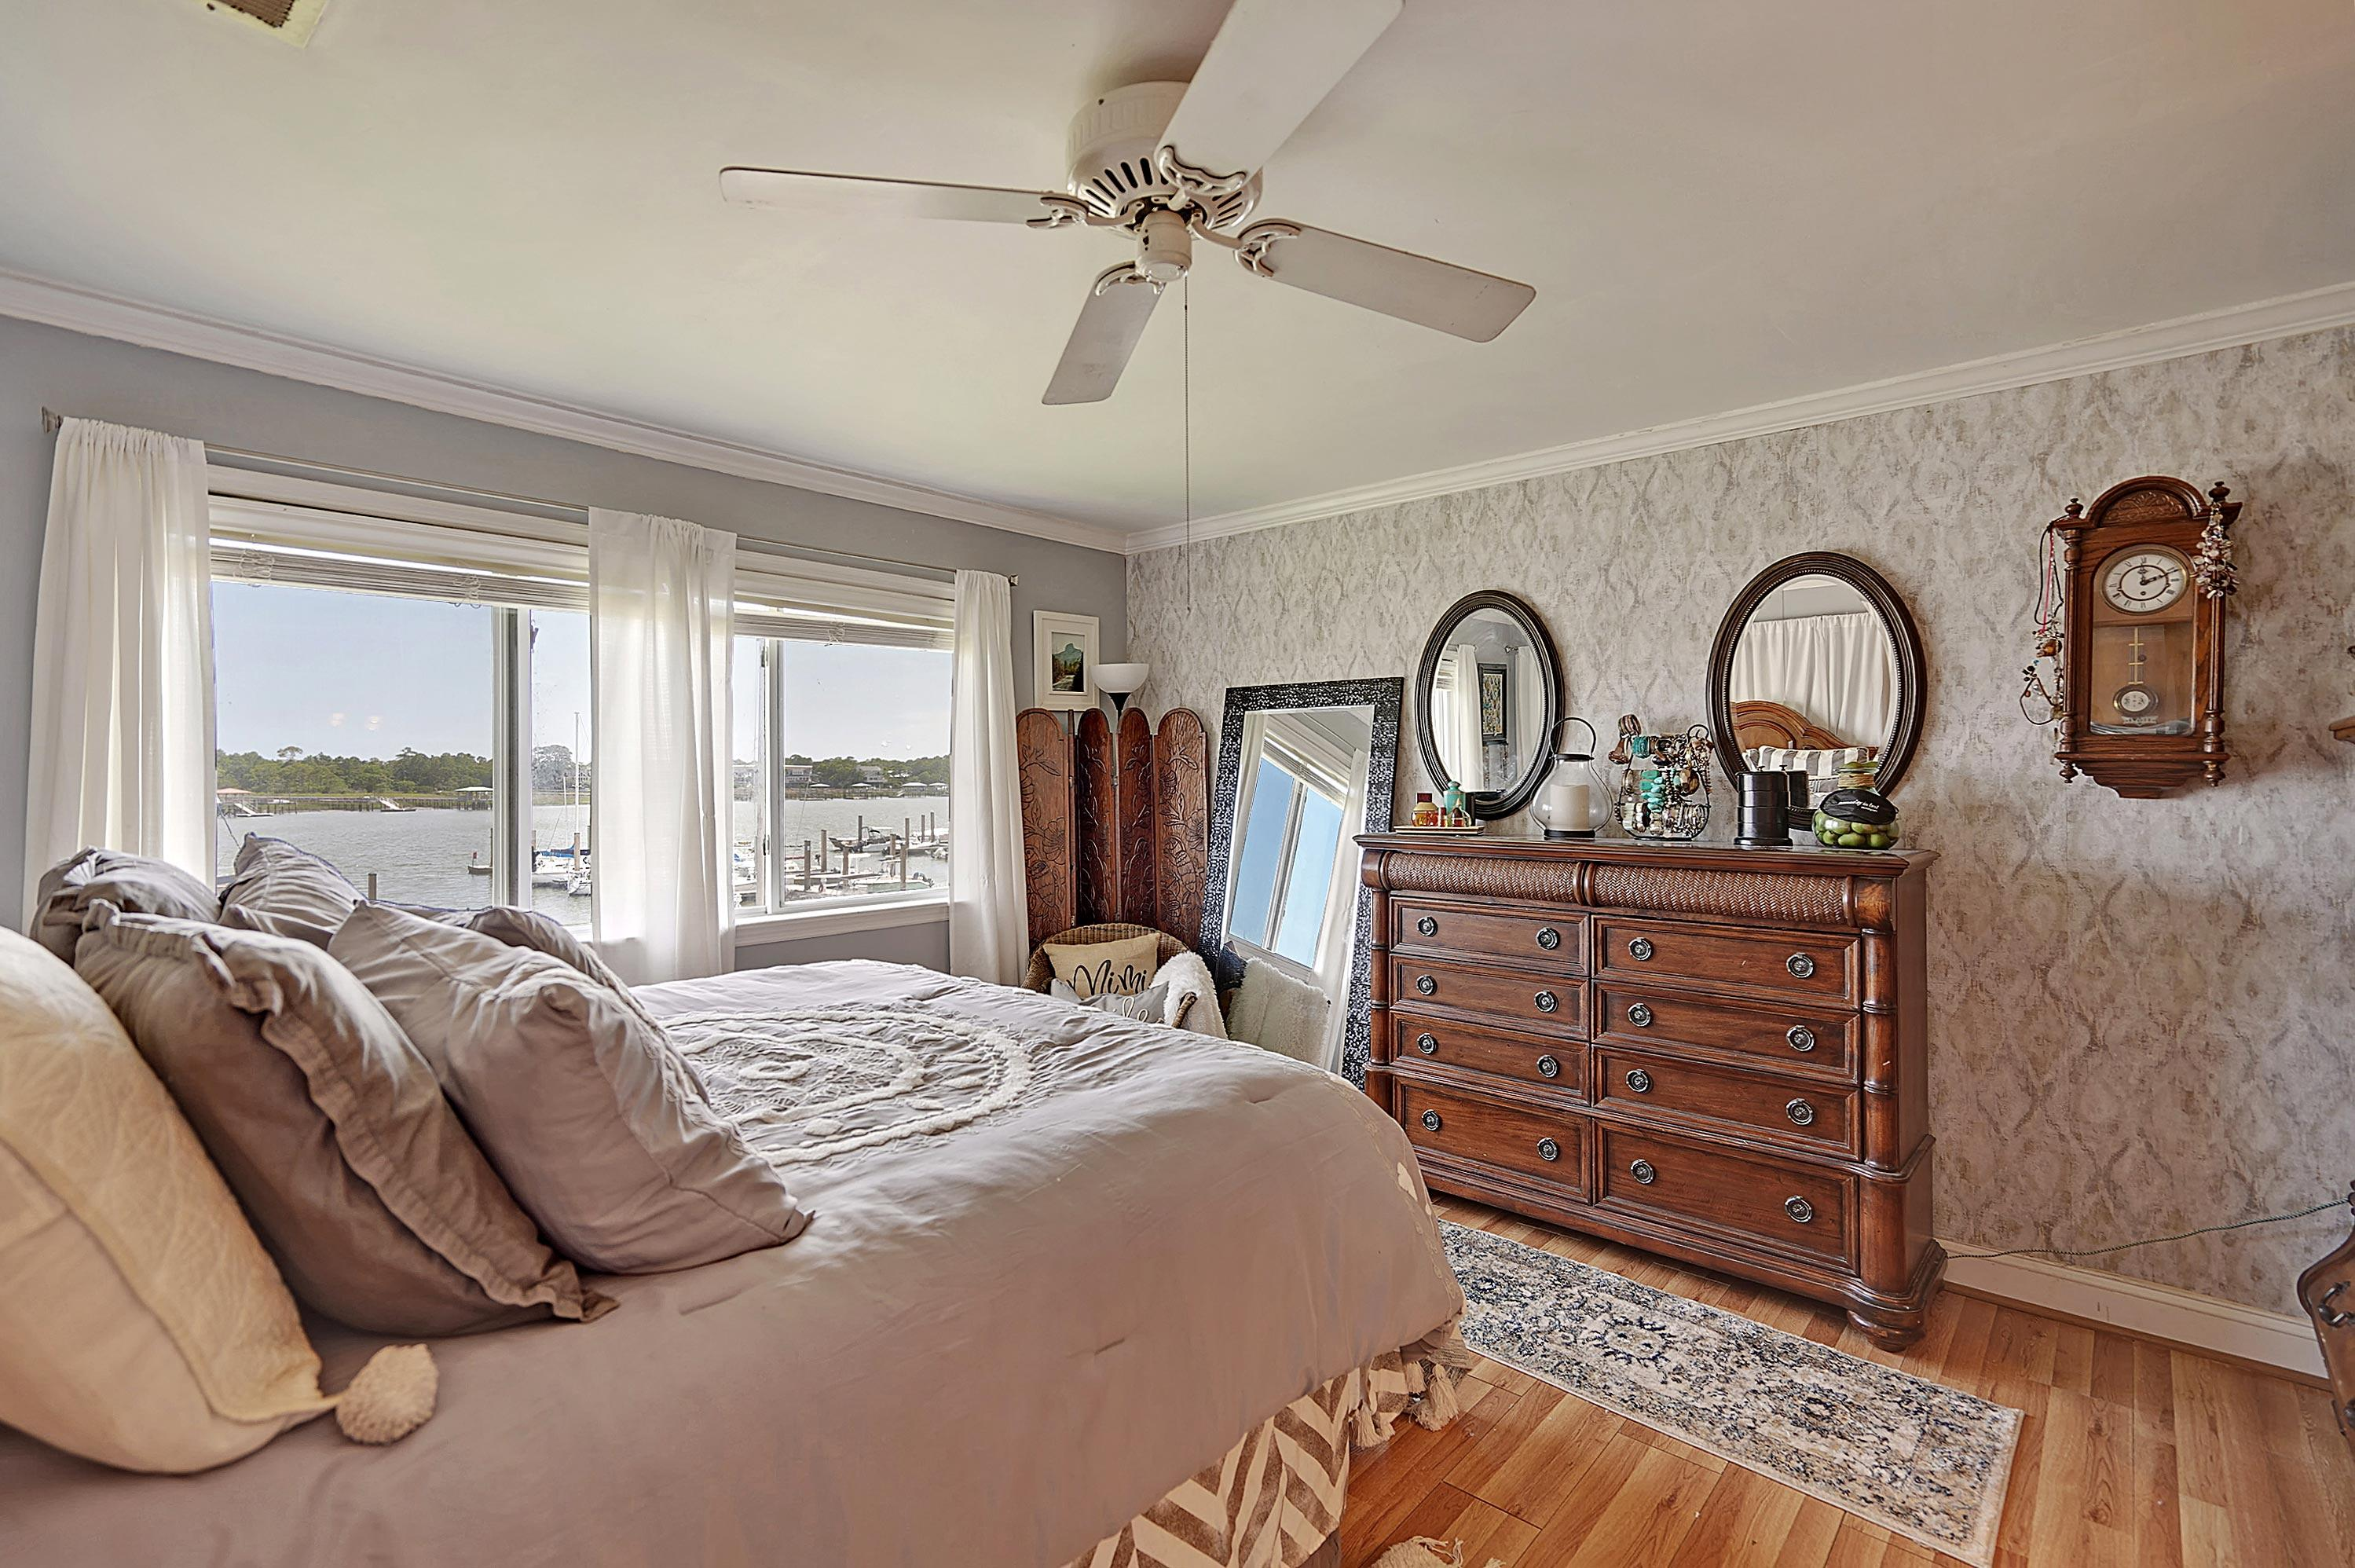 Mariners Cay Homes For Sale - 63 Mariners Cay, Folly Beach, SC - 28